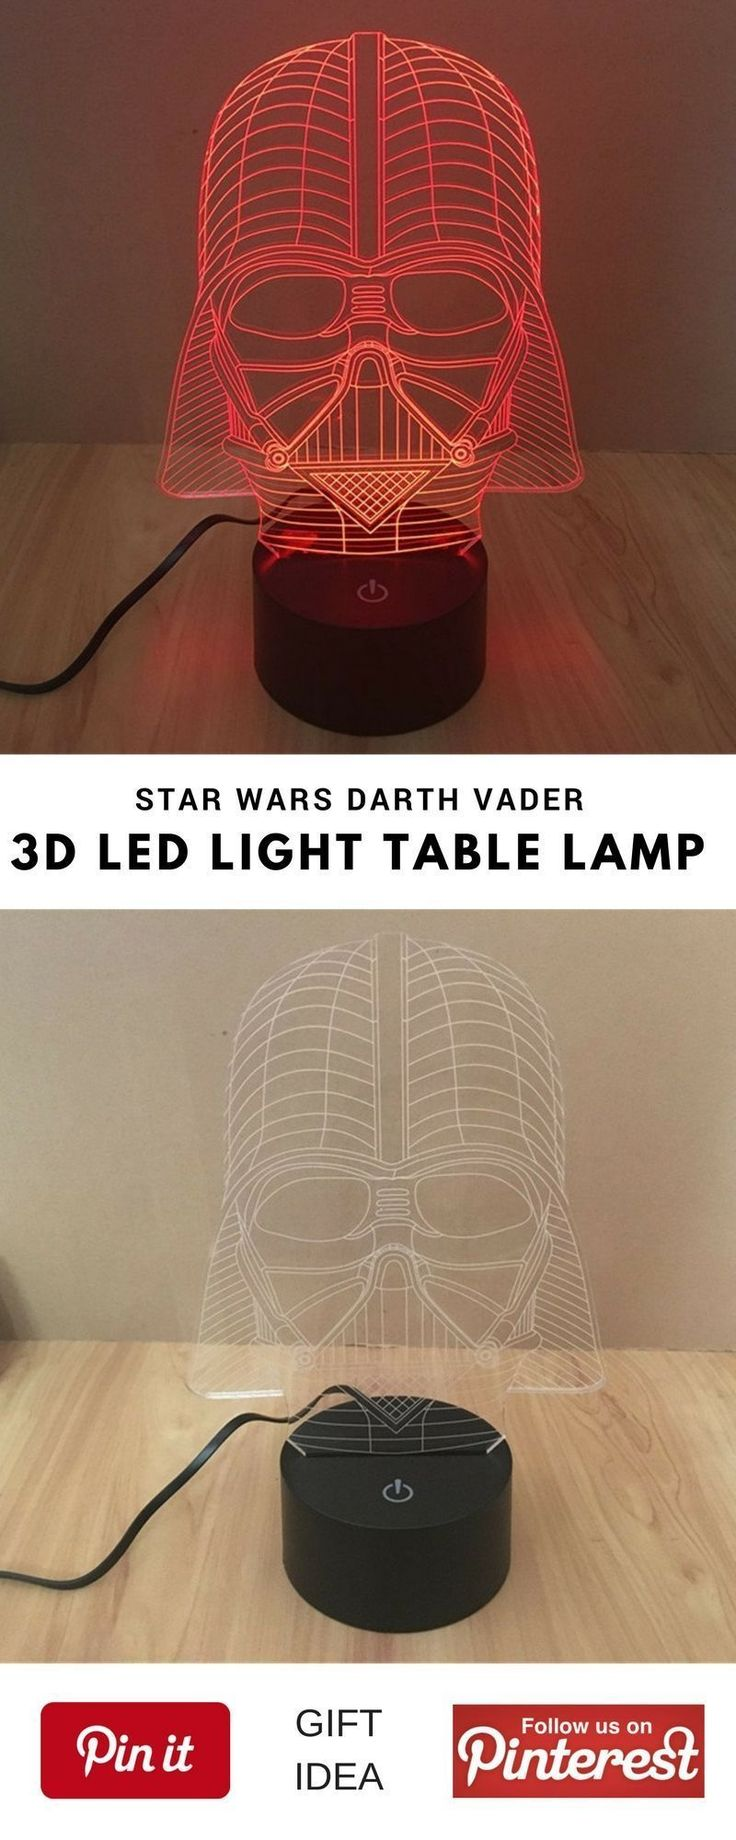 3d Star Wars Darth Vader LED Light Table Lamp Night Light Kids Room Bedroom. This could be a great best gift for geek friend,  mother's or father's day, birthday for women or men, girls, boys and little kids, christmas, girlfriend, boyfriend, couples, valentine, bridesmaid, graduation, weeding, engagement and retirement. It's an inexpensive great meaning present and personalized for any funny guys anniversary. #geek #cheap #unique #weird #DIY #unusual #homemade #online #coolideas #shop Are